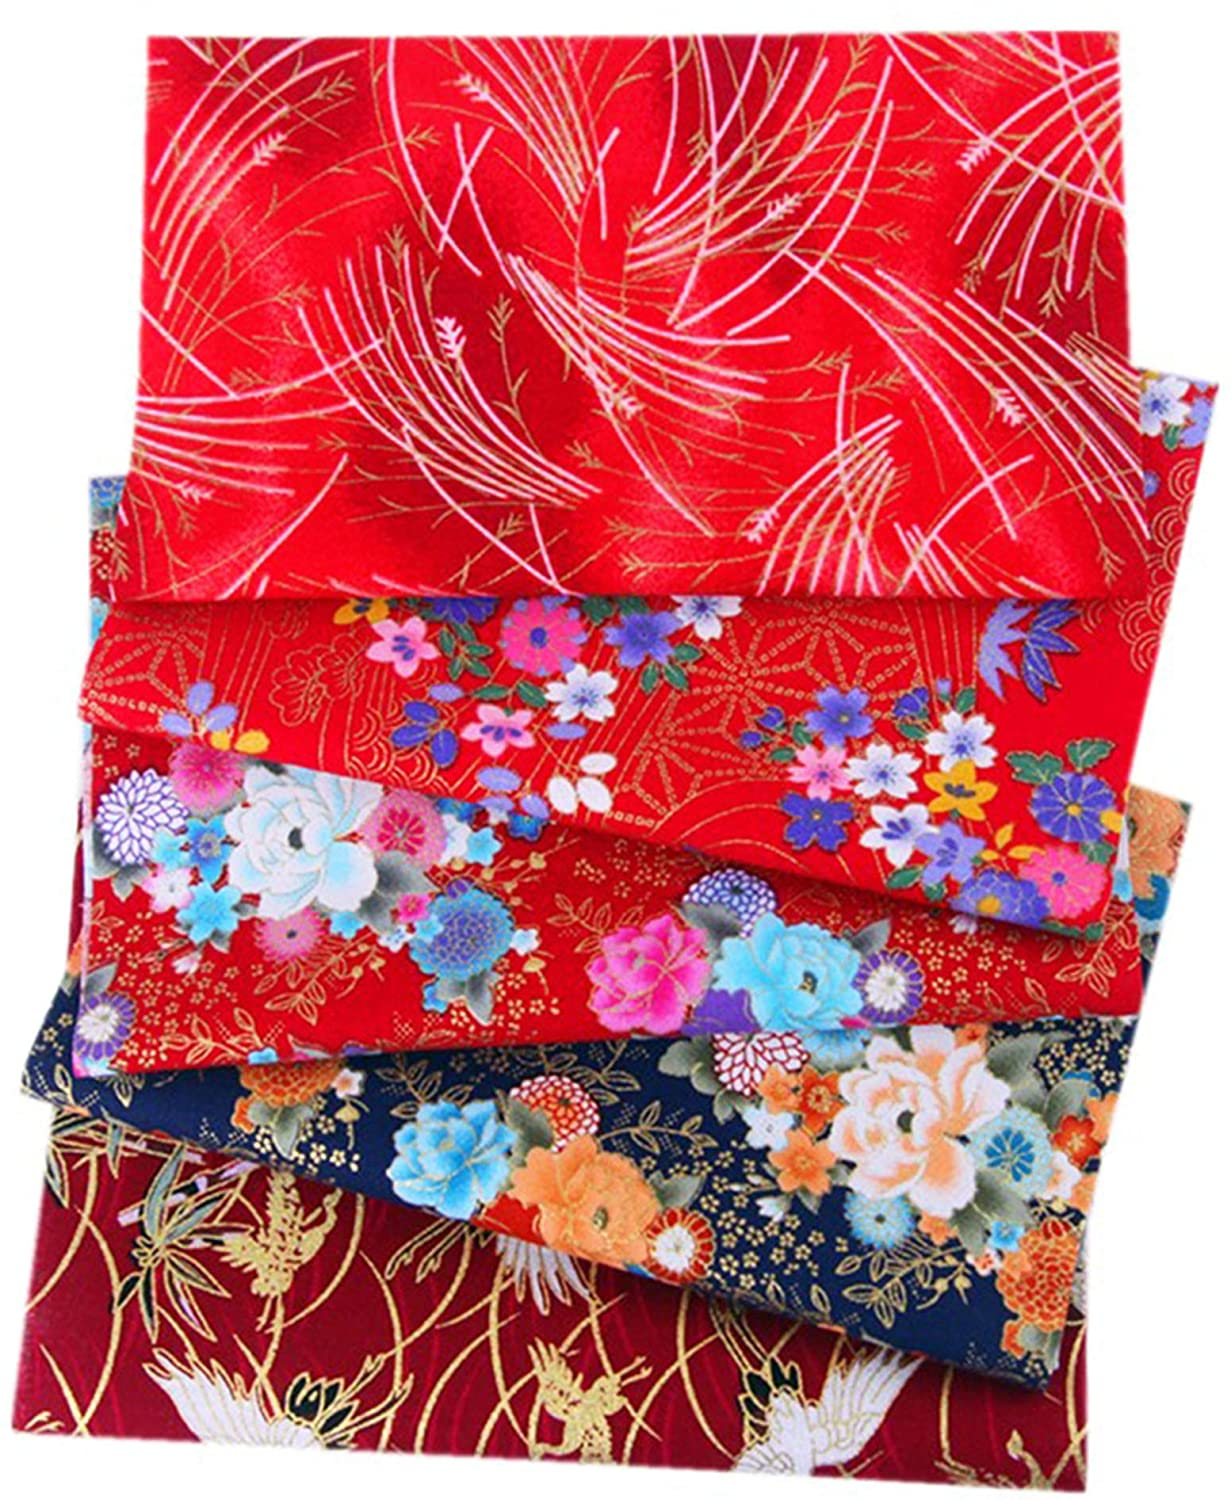 Zrium DIY Handmade Craft Sewing Cotton Fabric Japanese Printed Style Mixed Pattern Fabric for Crafts Sewing Scrapbooking Clothing 5PCS 2025cm (Set E)